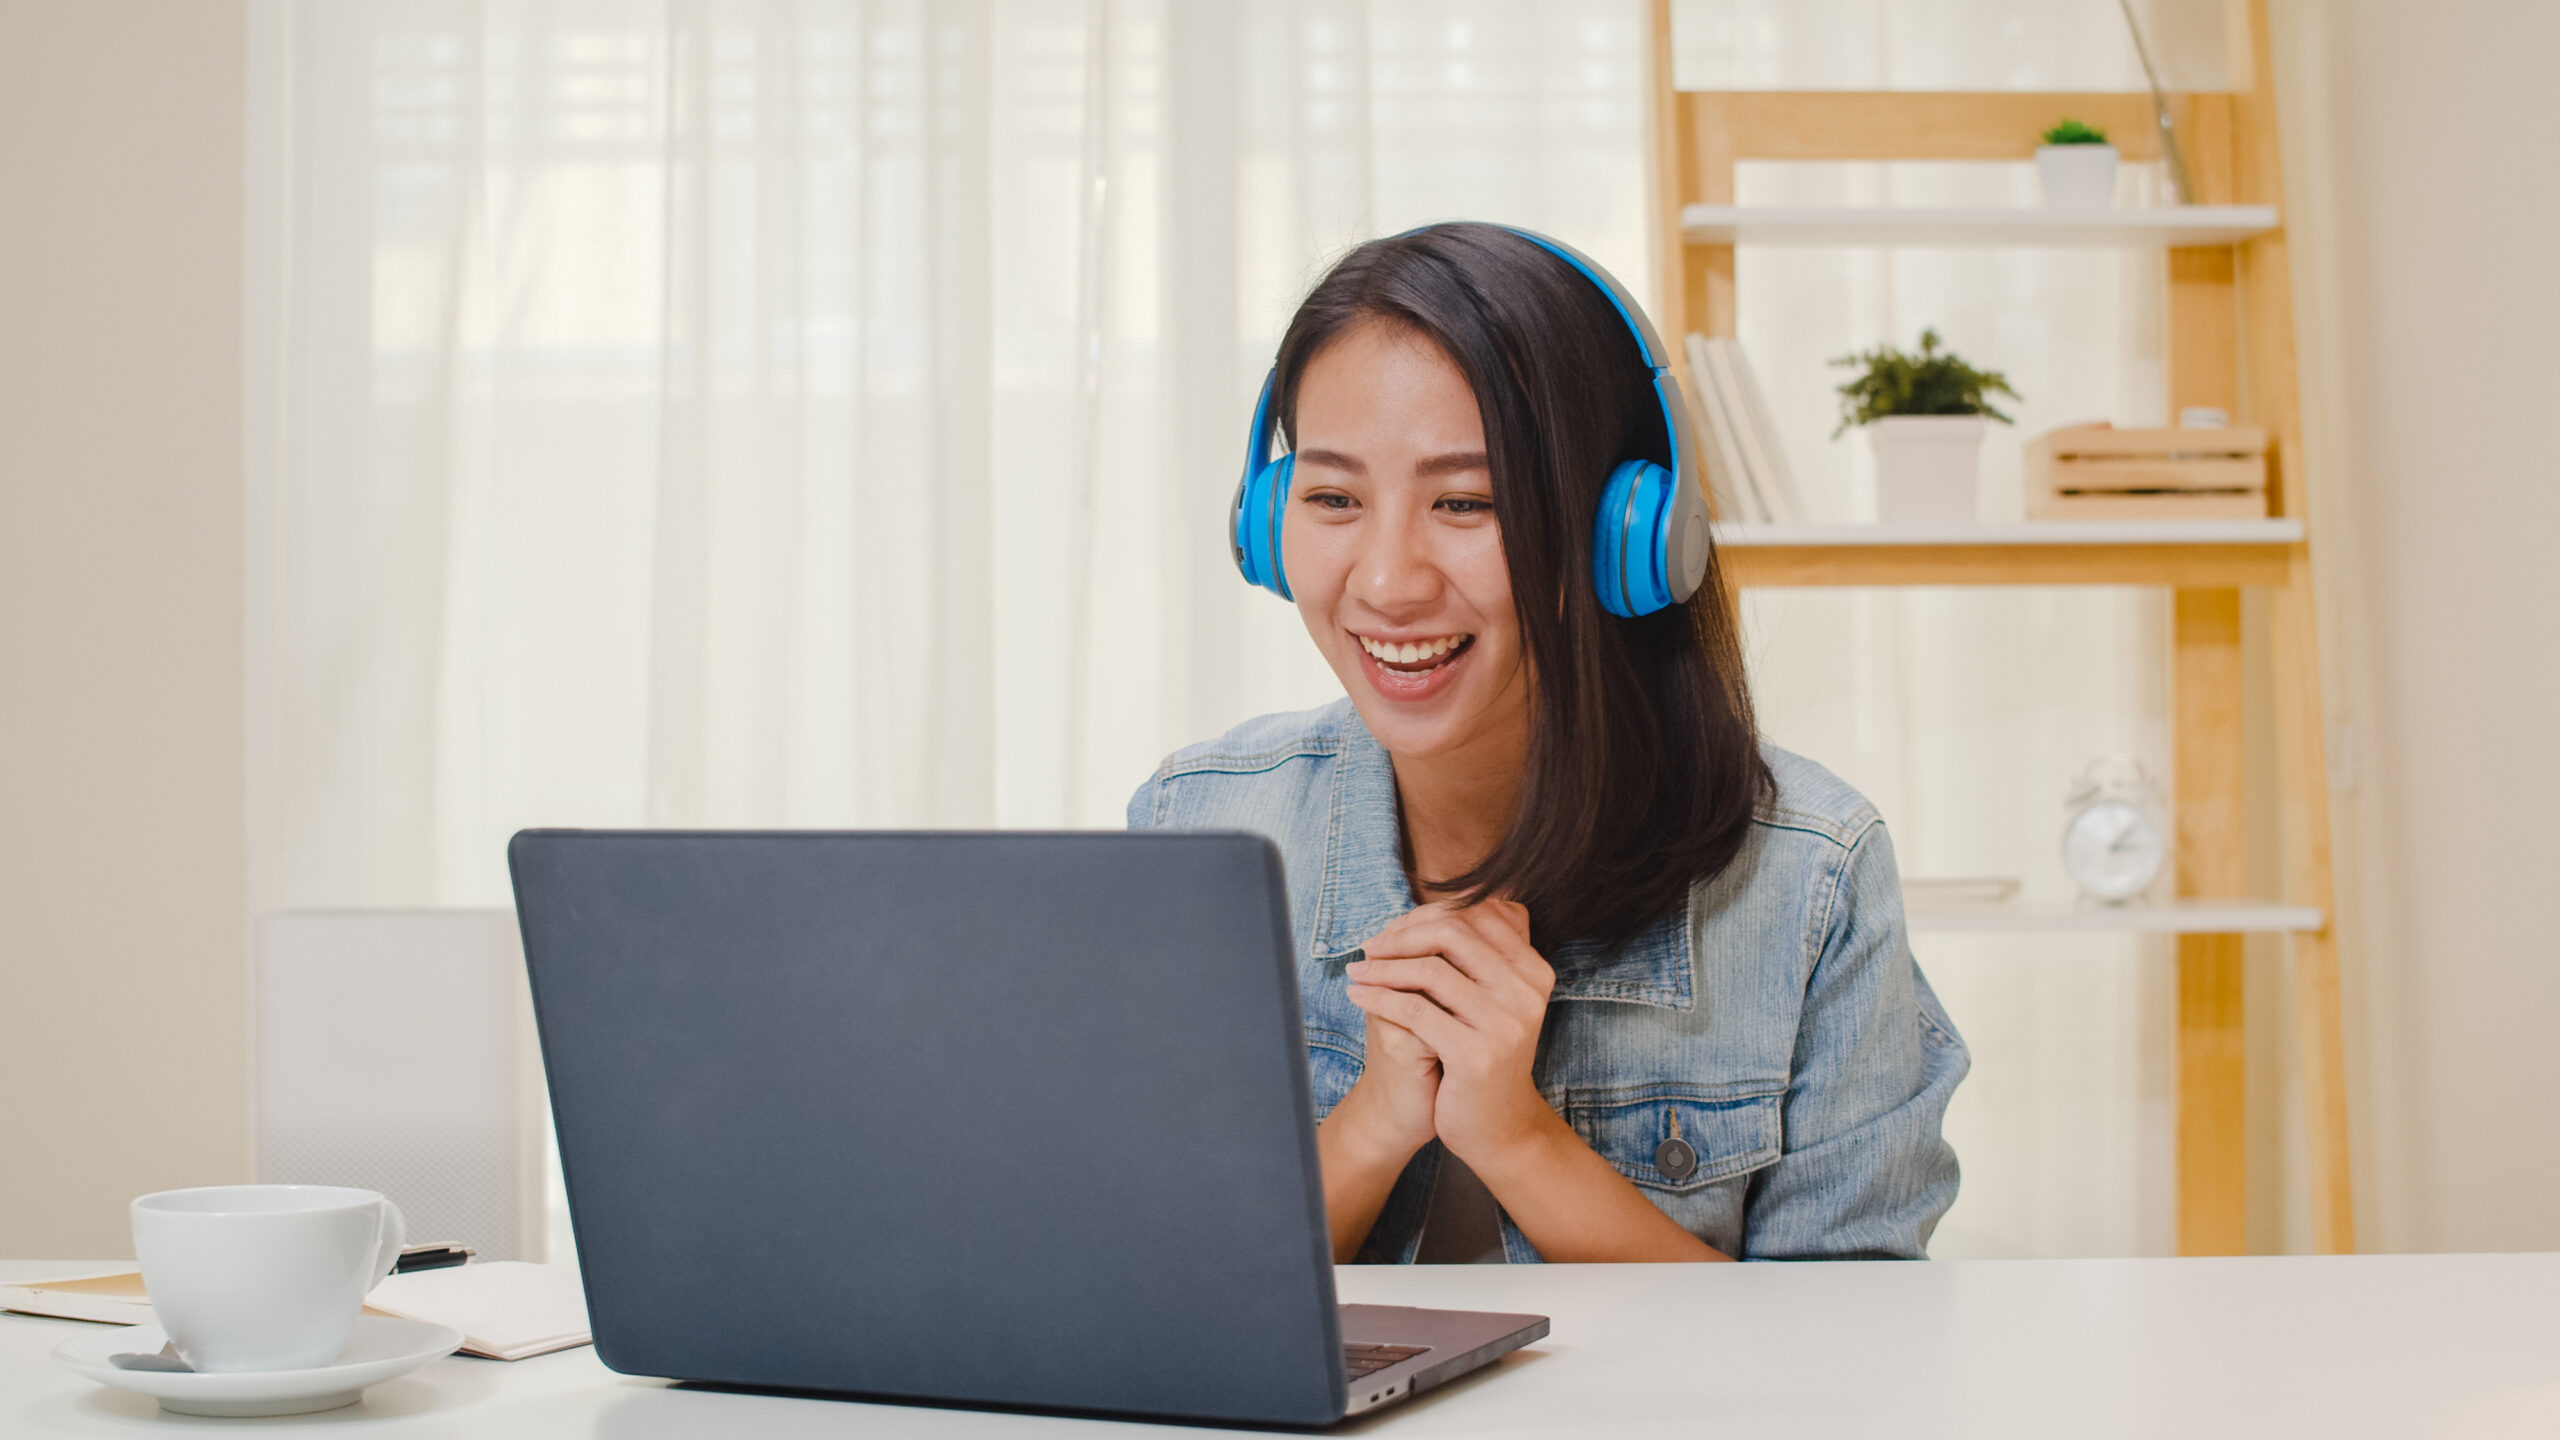 Freelance business women casual wear using laptop working call video conference with customer in workplace in living room at home. Happy young Asian girl relax sitting on desk do job in internet.